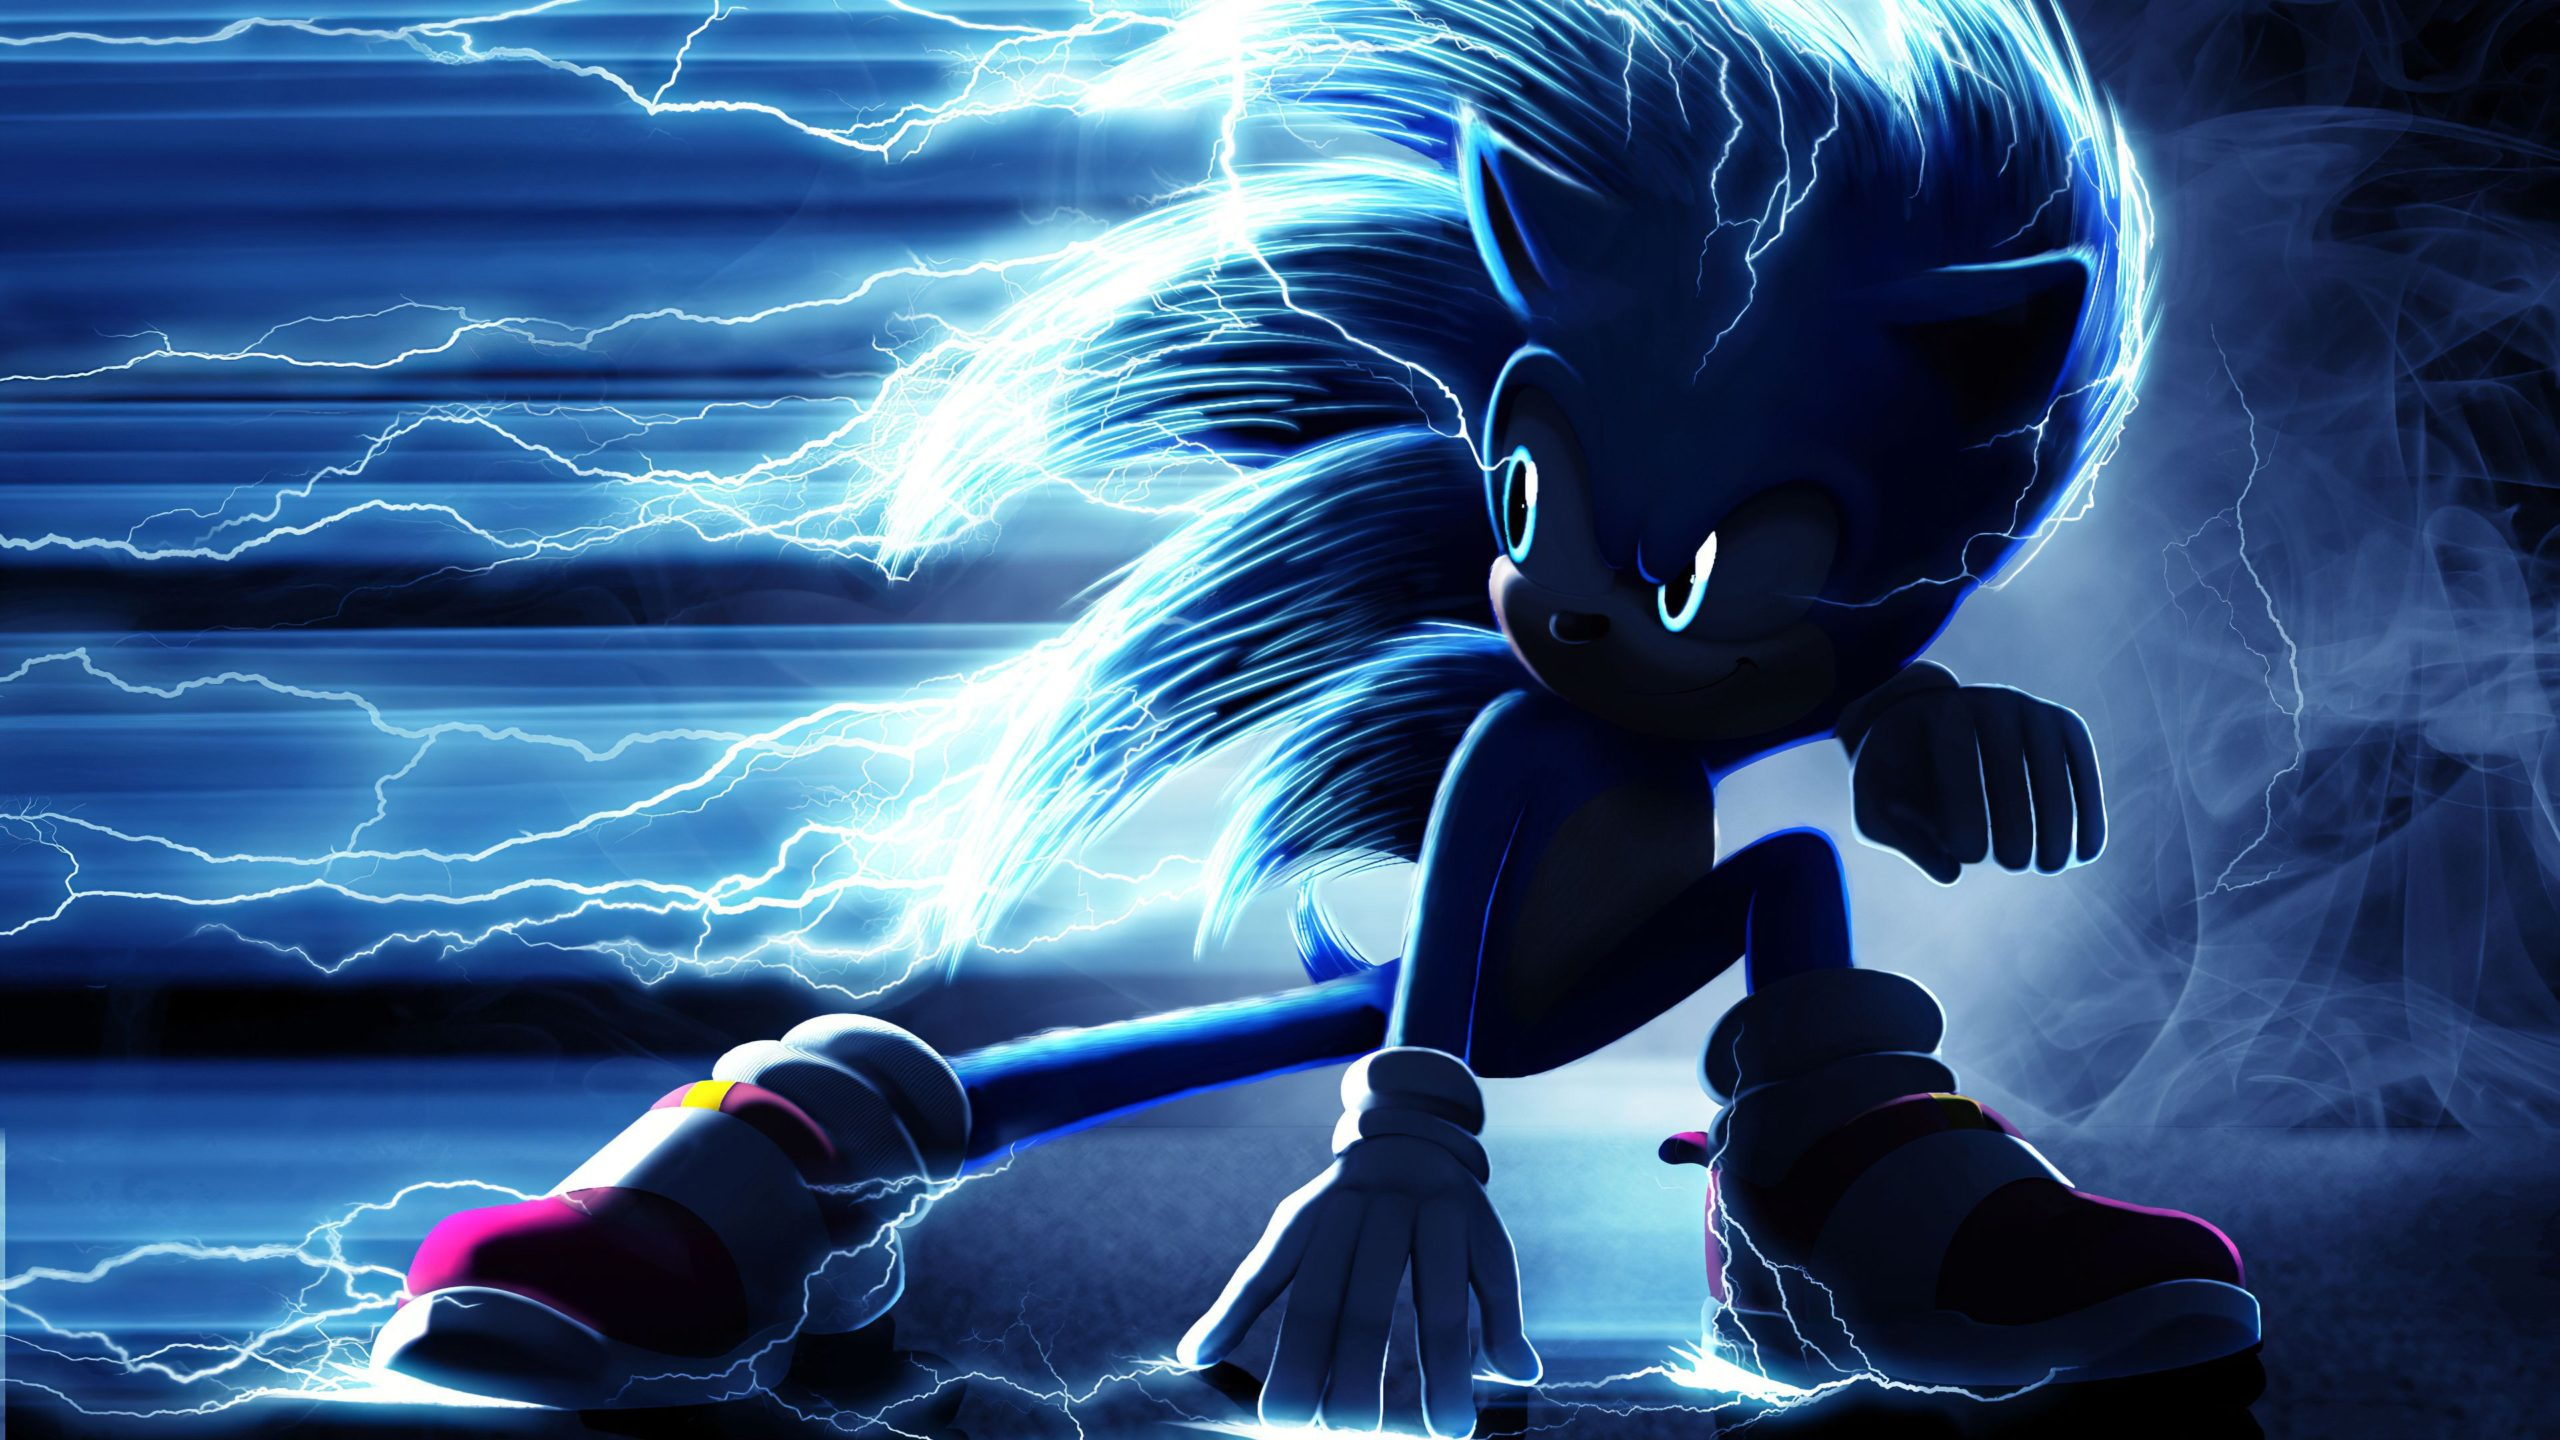 sonic screensaver pictures